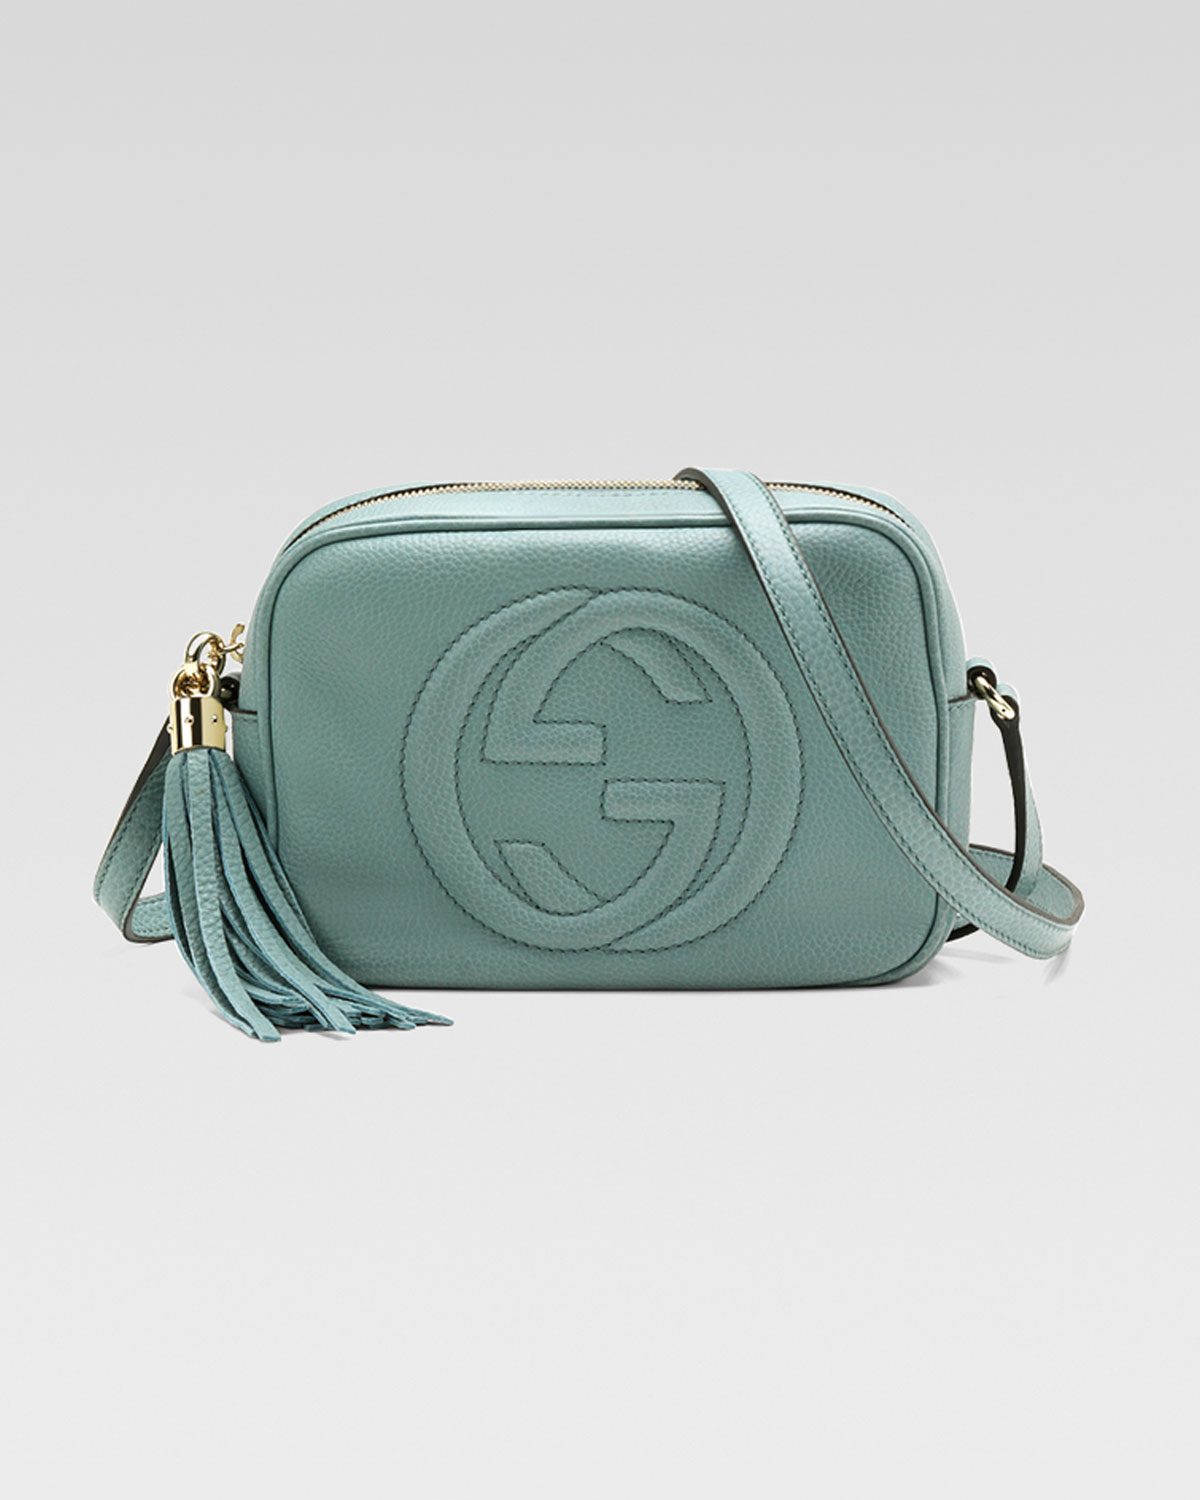 3fea11cbcde Lyst - Gucci Soho Leather Disco Bag Pool Water in Green